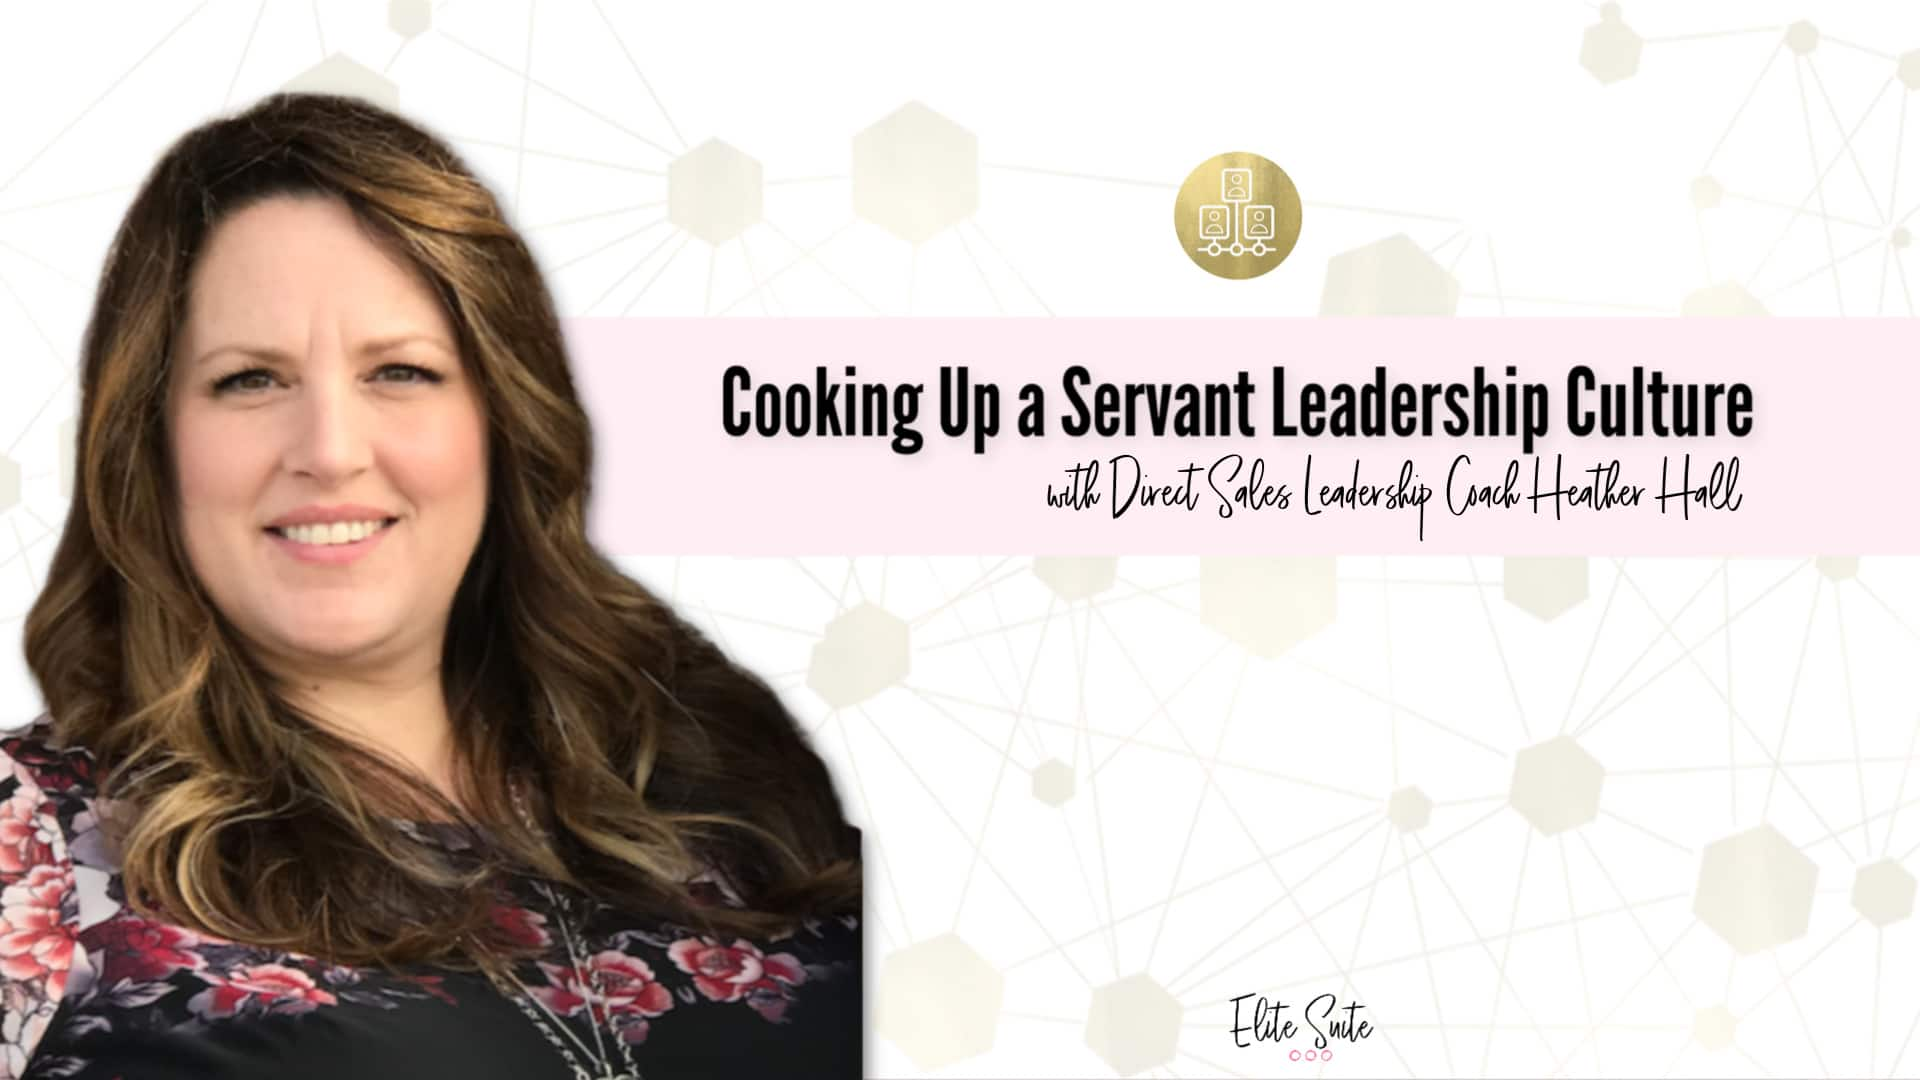 Cooking Up a Servant Leadership Culture Masterclass title overlay